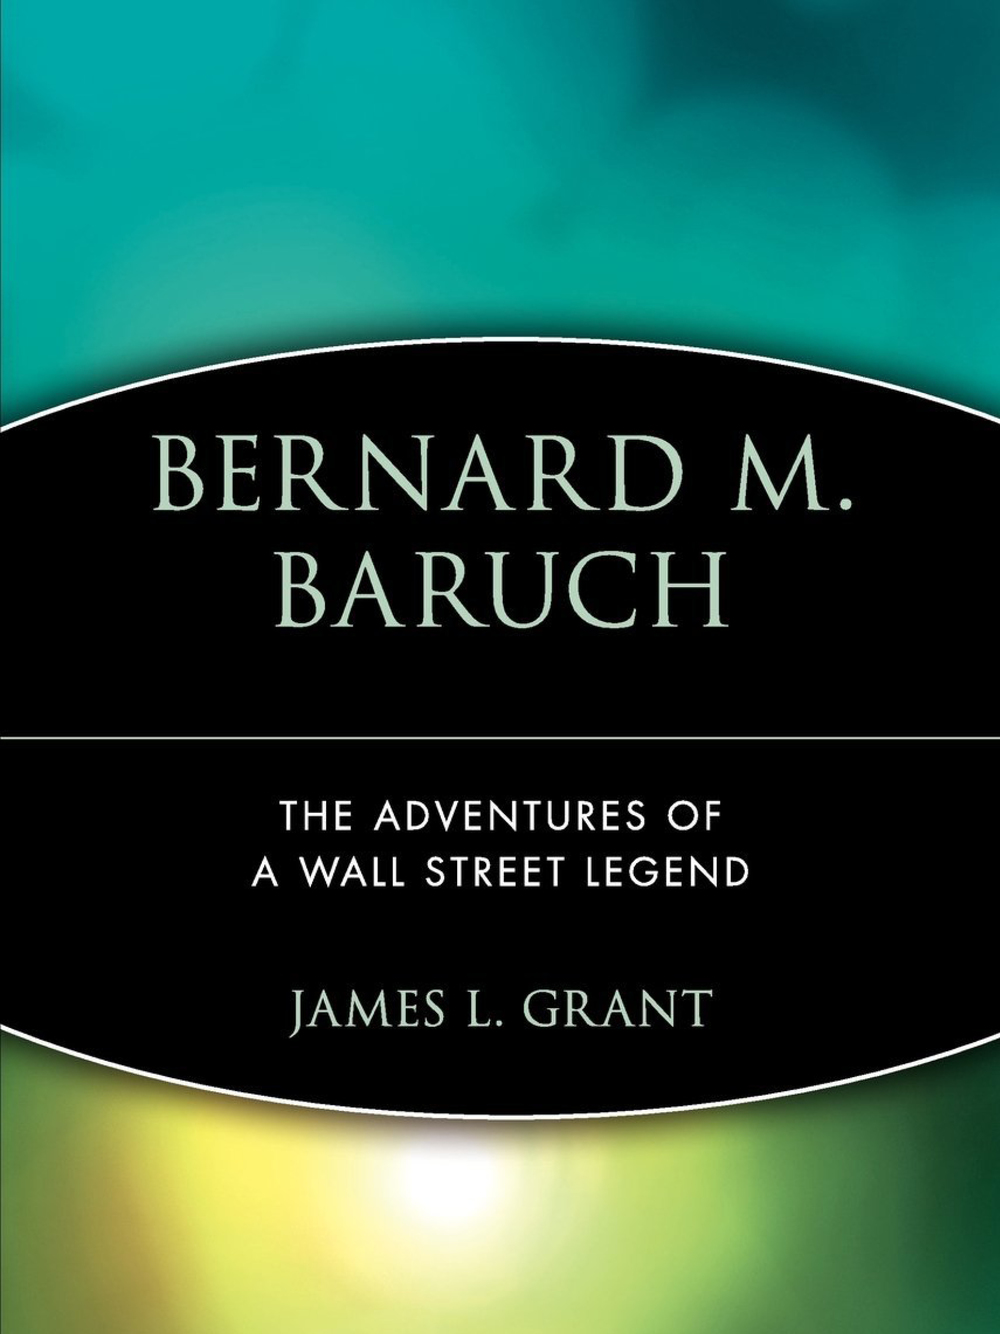 Bernard Baruch: The Adventures Of A Wall Street Legend. James Grant 1982